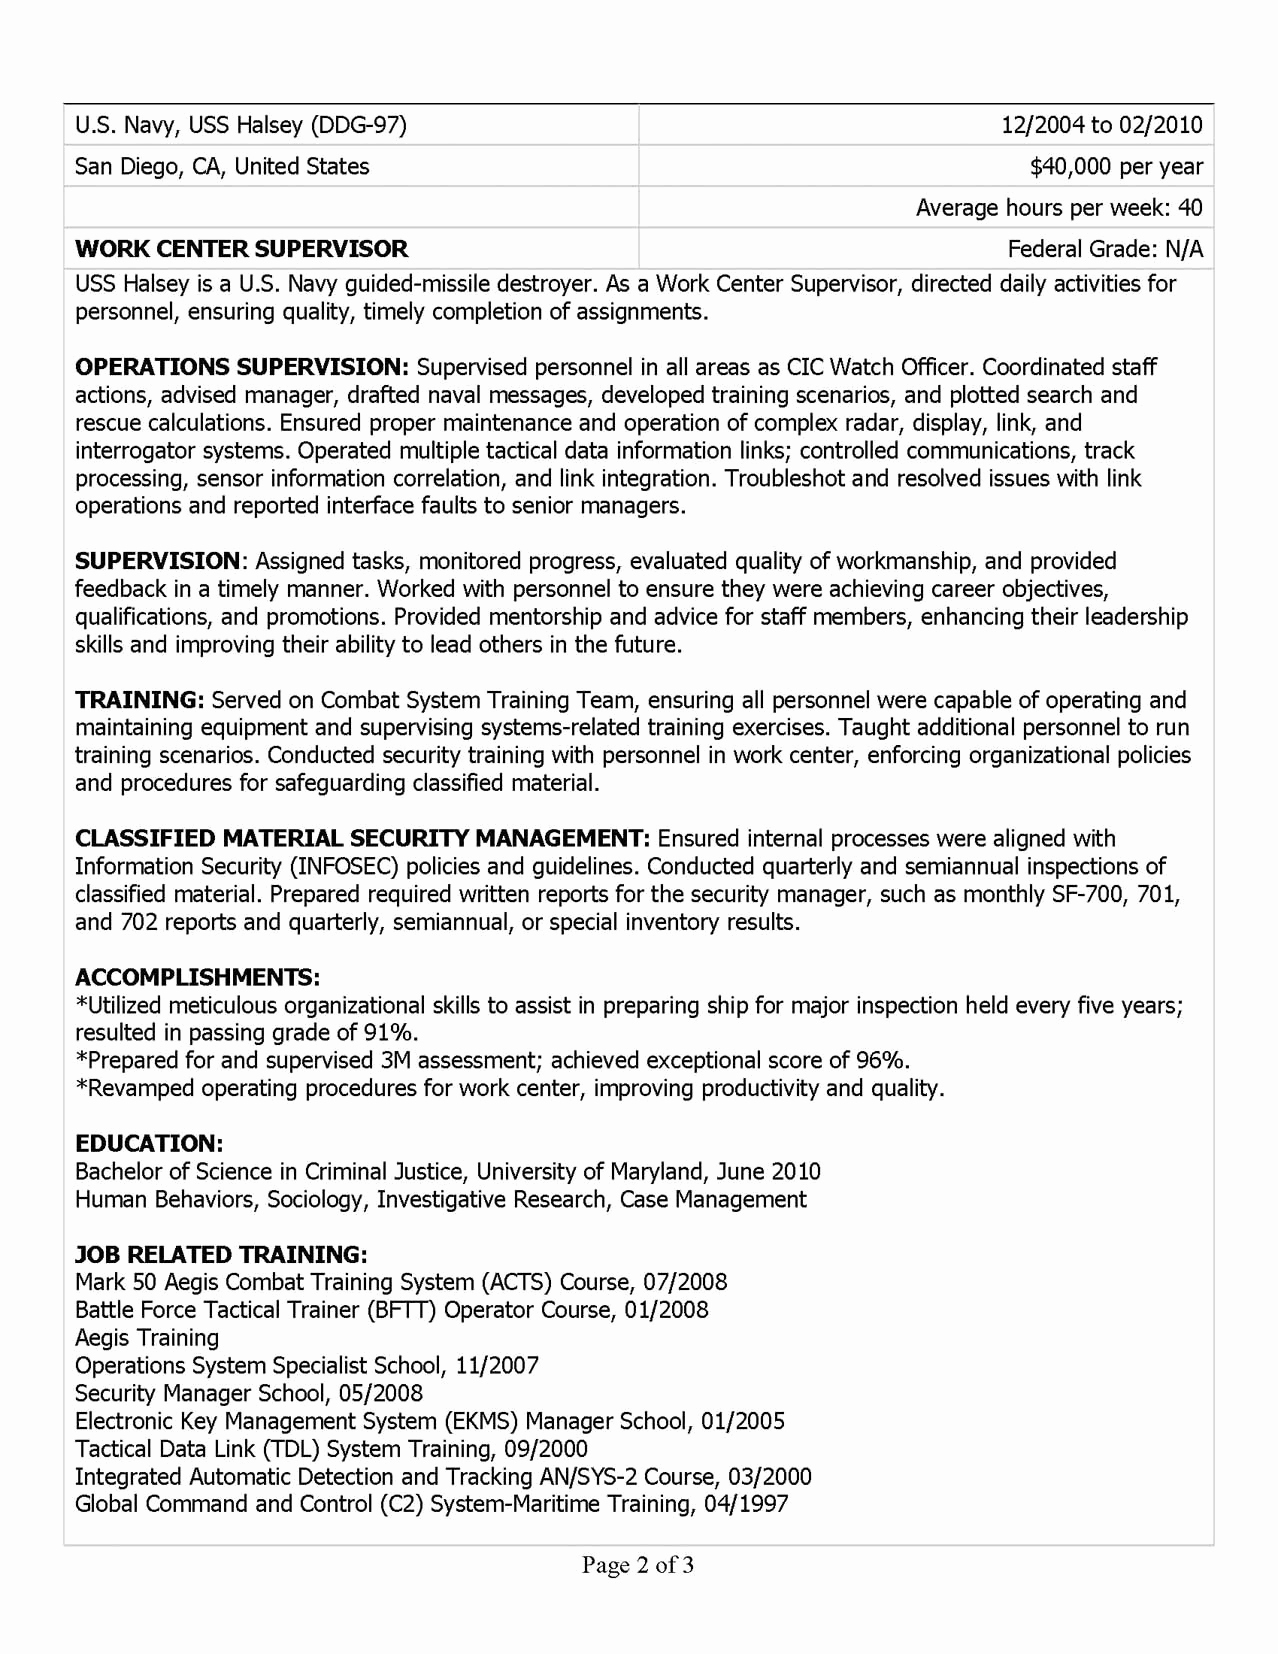 medical scribe resume example germantown internal medicine